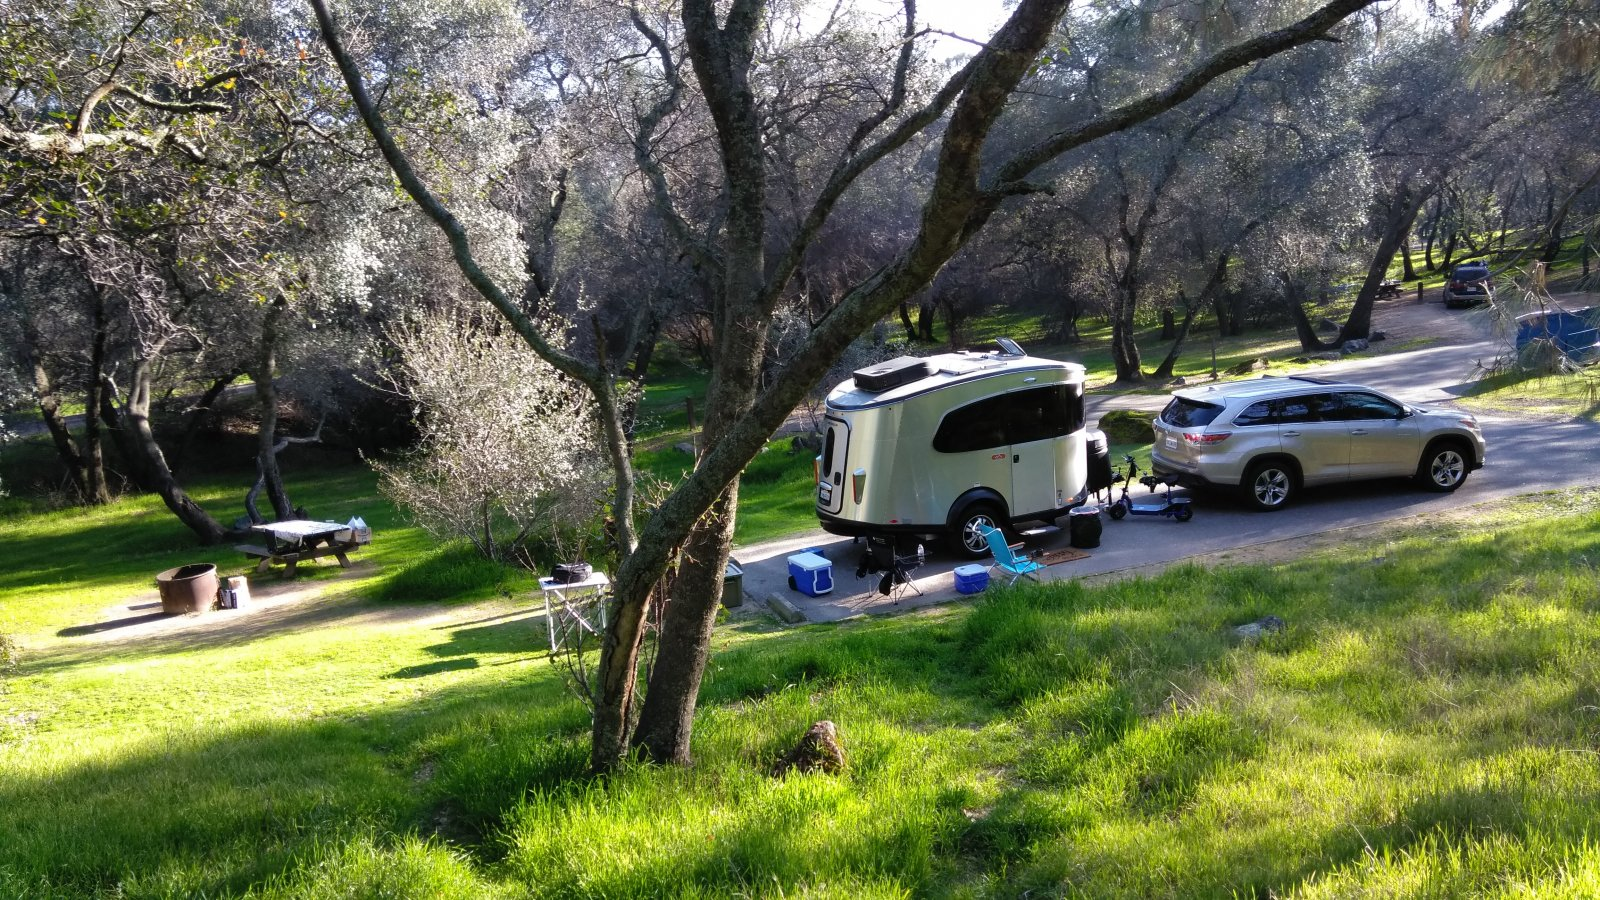 Click image for larger version  Name:Basecamp happy place.jpg Views:69 Size:511.9 KB ID:315994